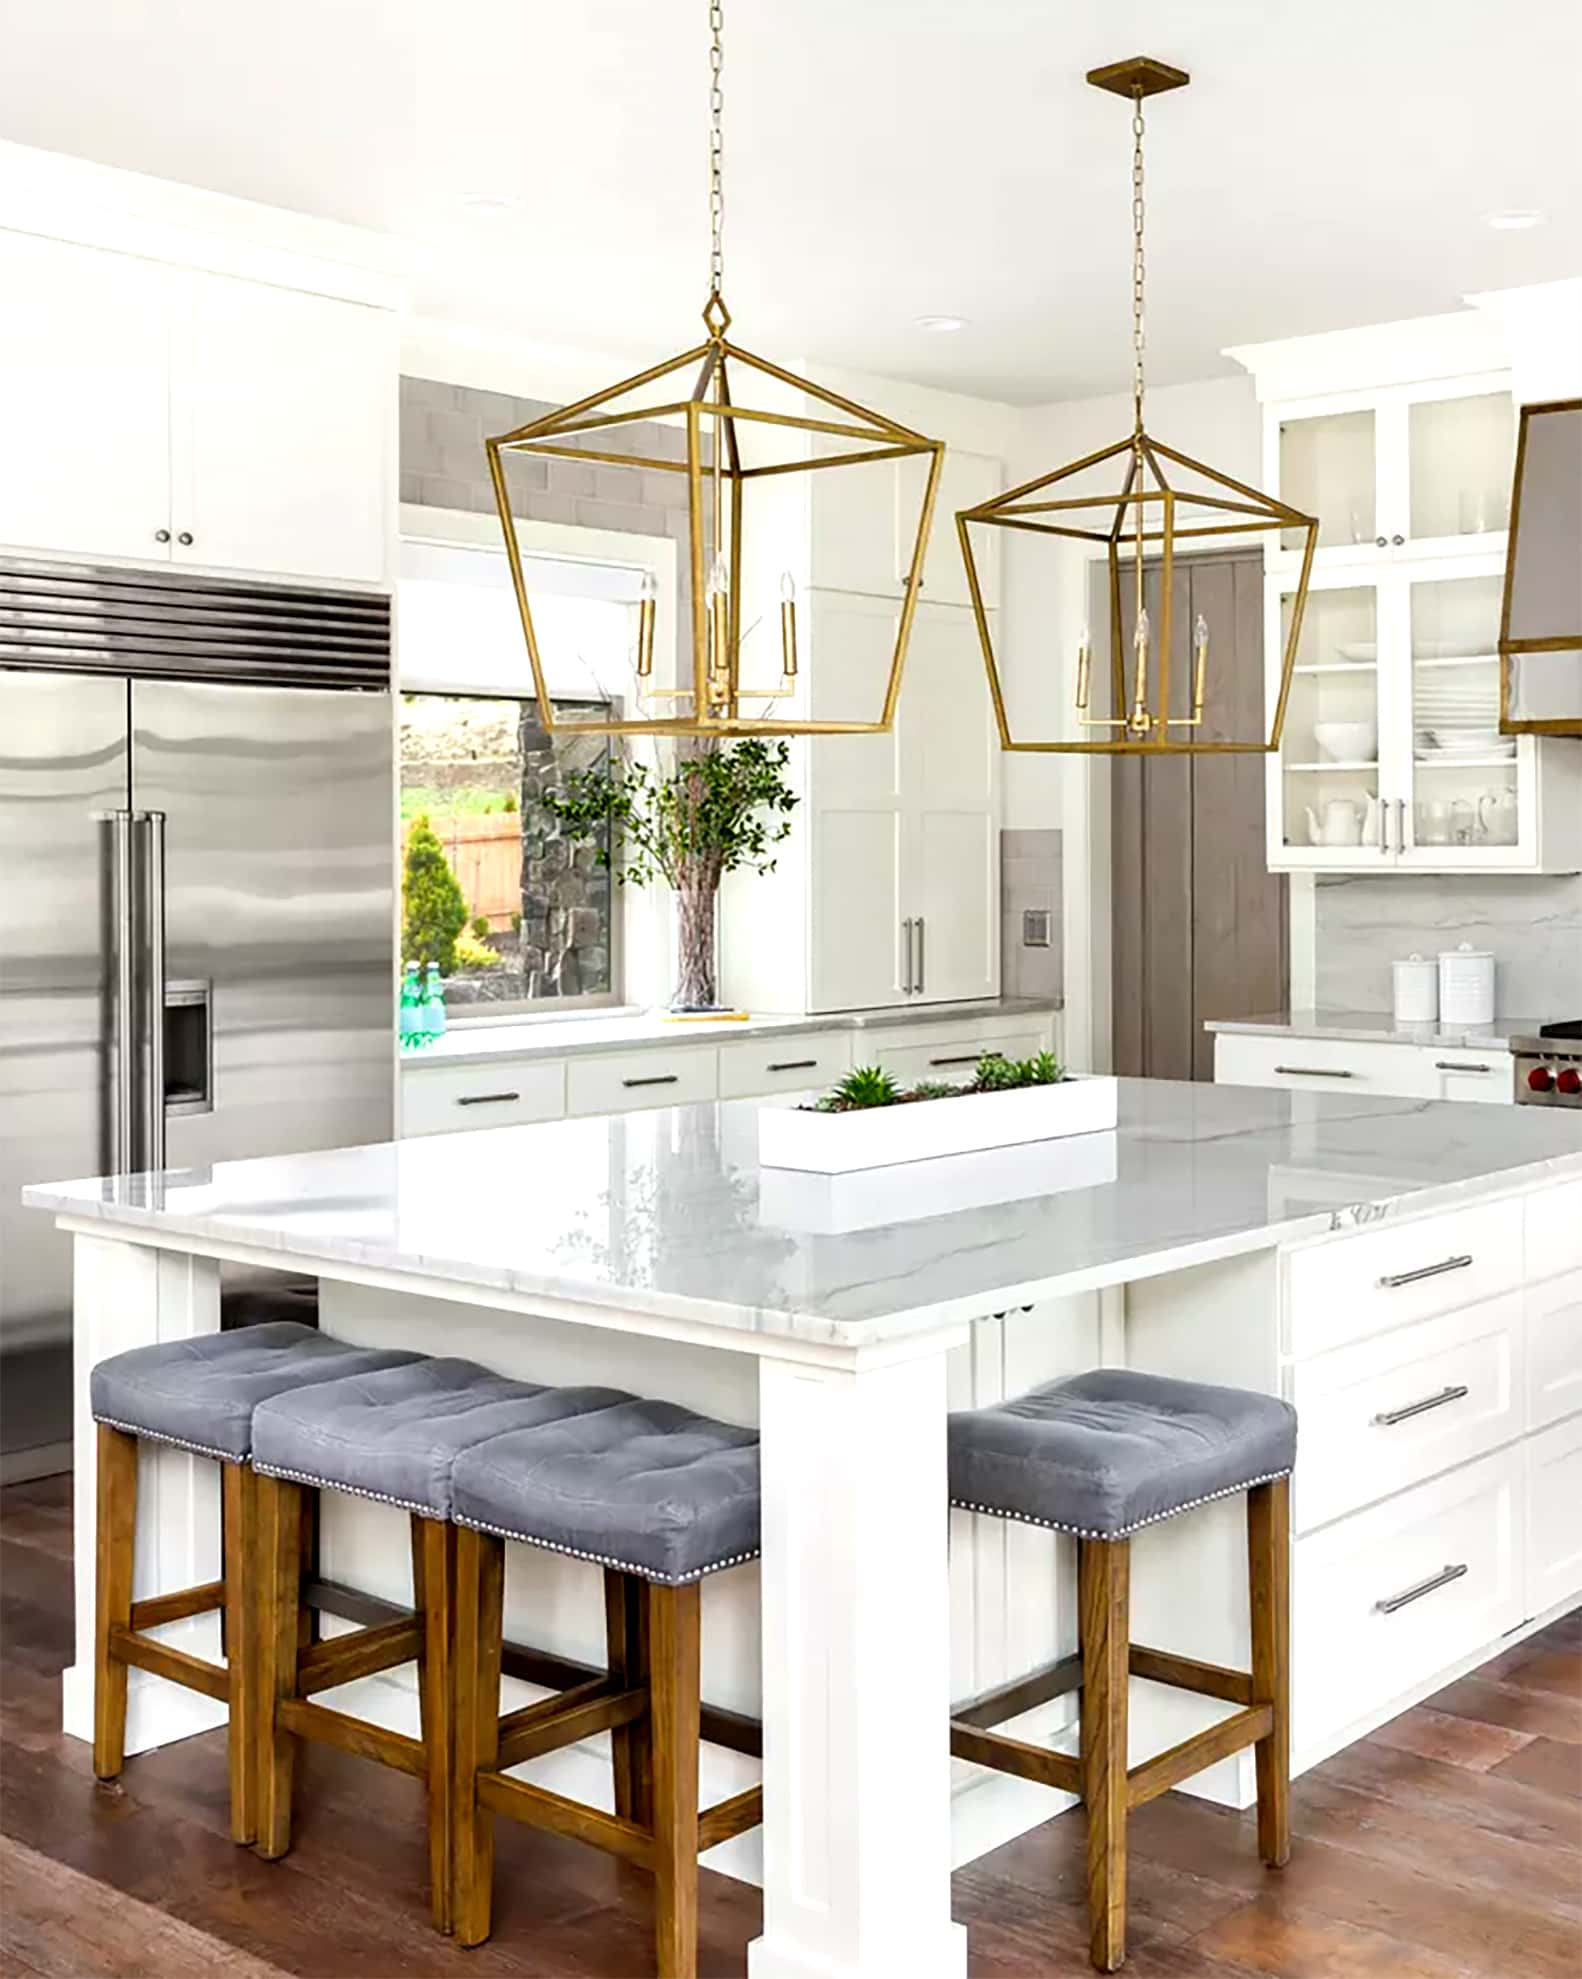 Our Products - Kitchen Islands